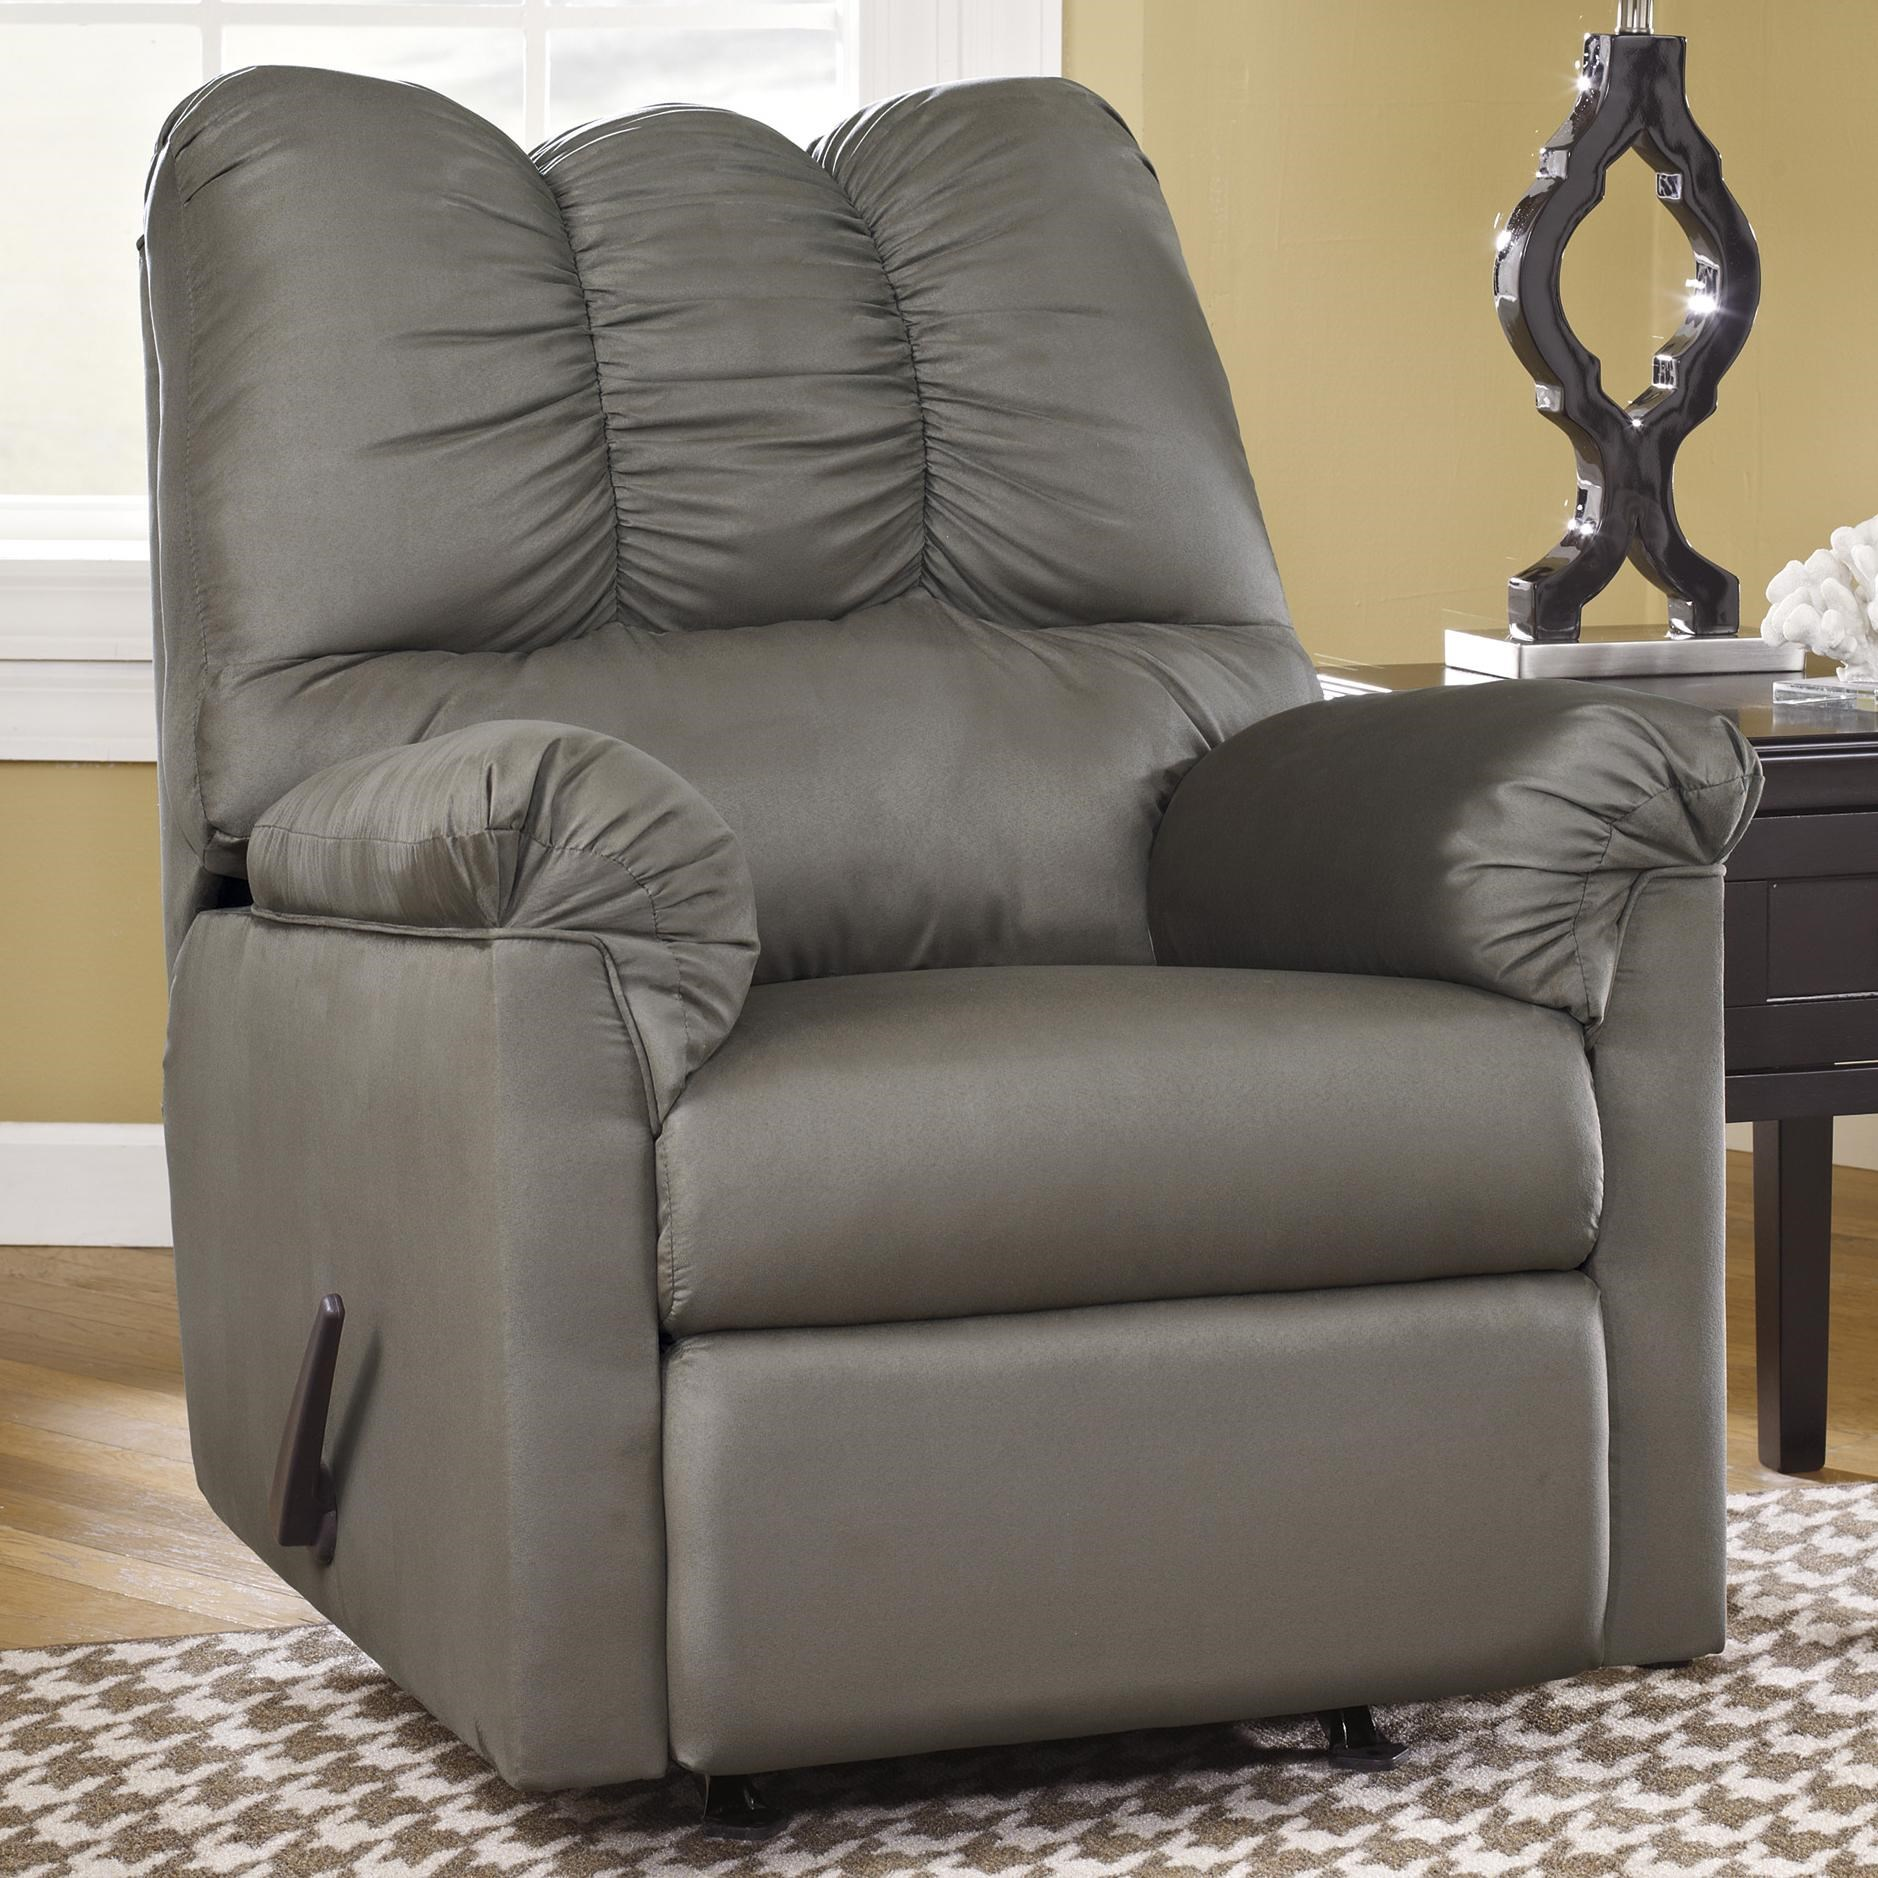 Signature Design by Ashley Darcy - Cobblestone Rocker Recliner - Becker Furniture World - Three Way Recliners  sc 1 st  Becker Furniture World & Signature Design by Ashley Darcy - Cobblestone Rocker Recliner ... islam-shia.org